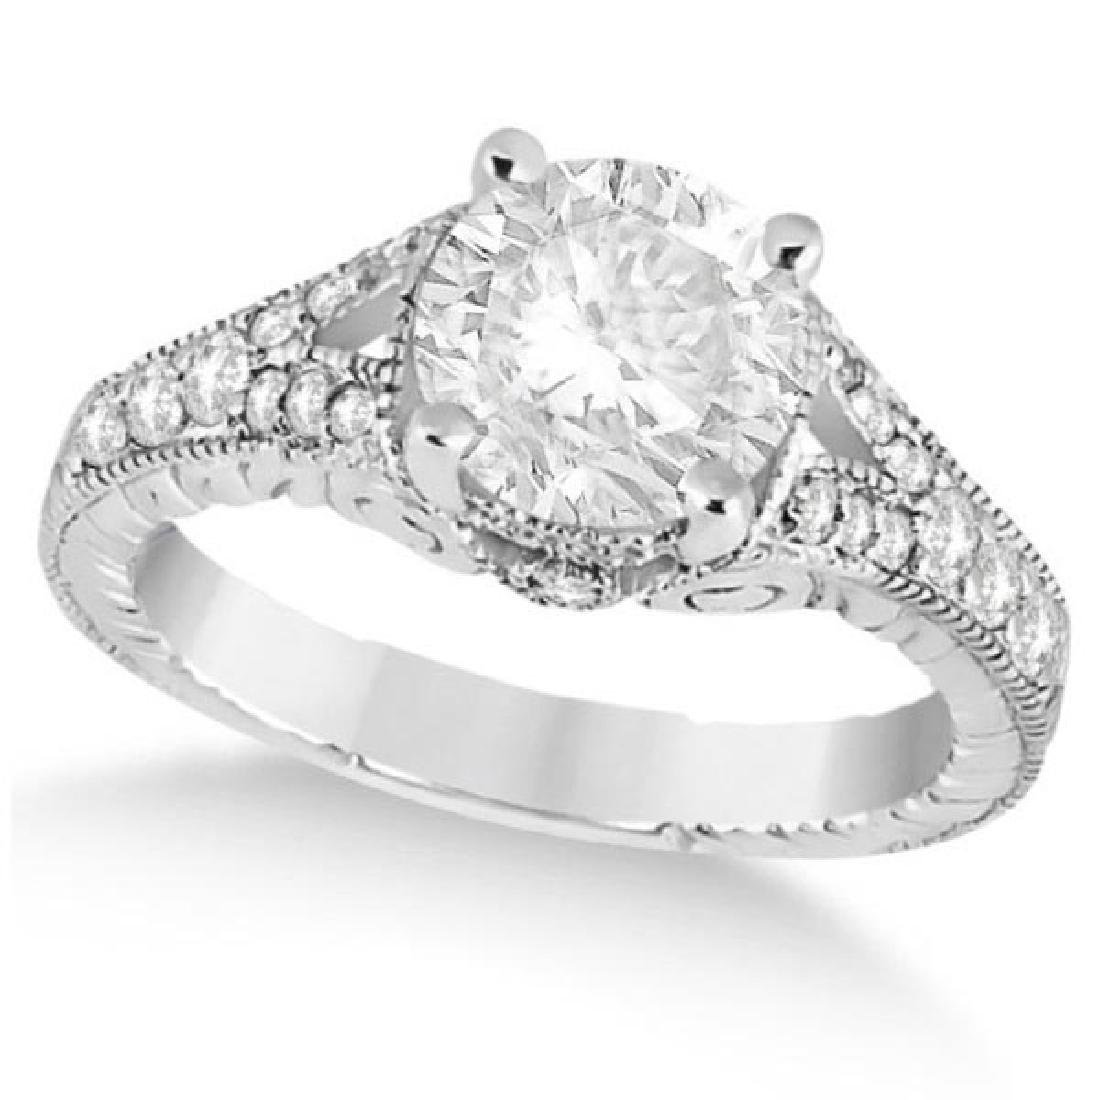 Antique Art Deco Round Diamond Engagement Ring 14k Whit